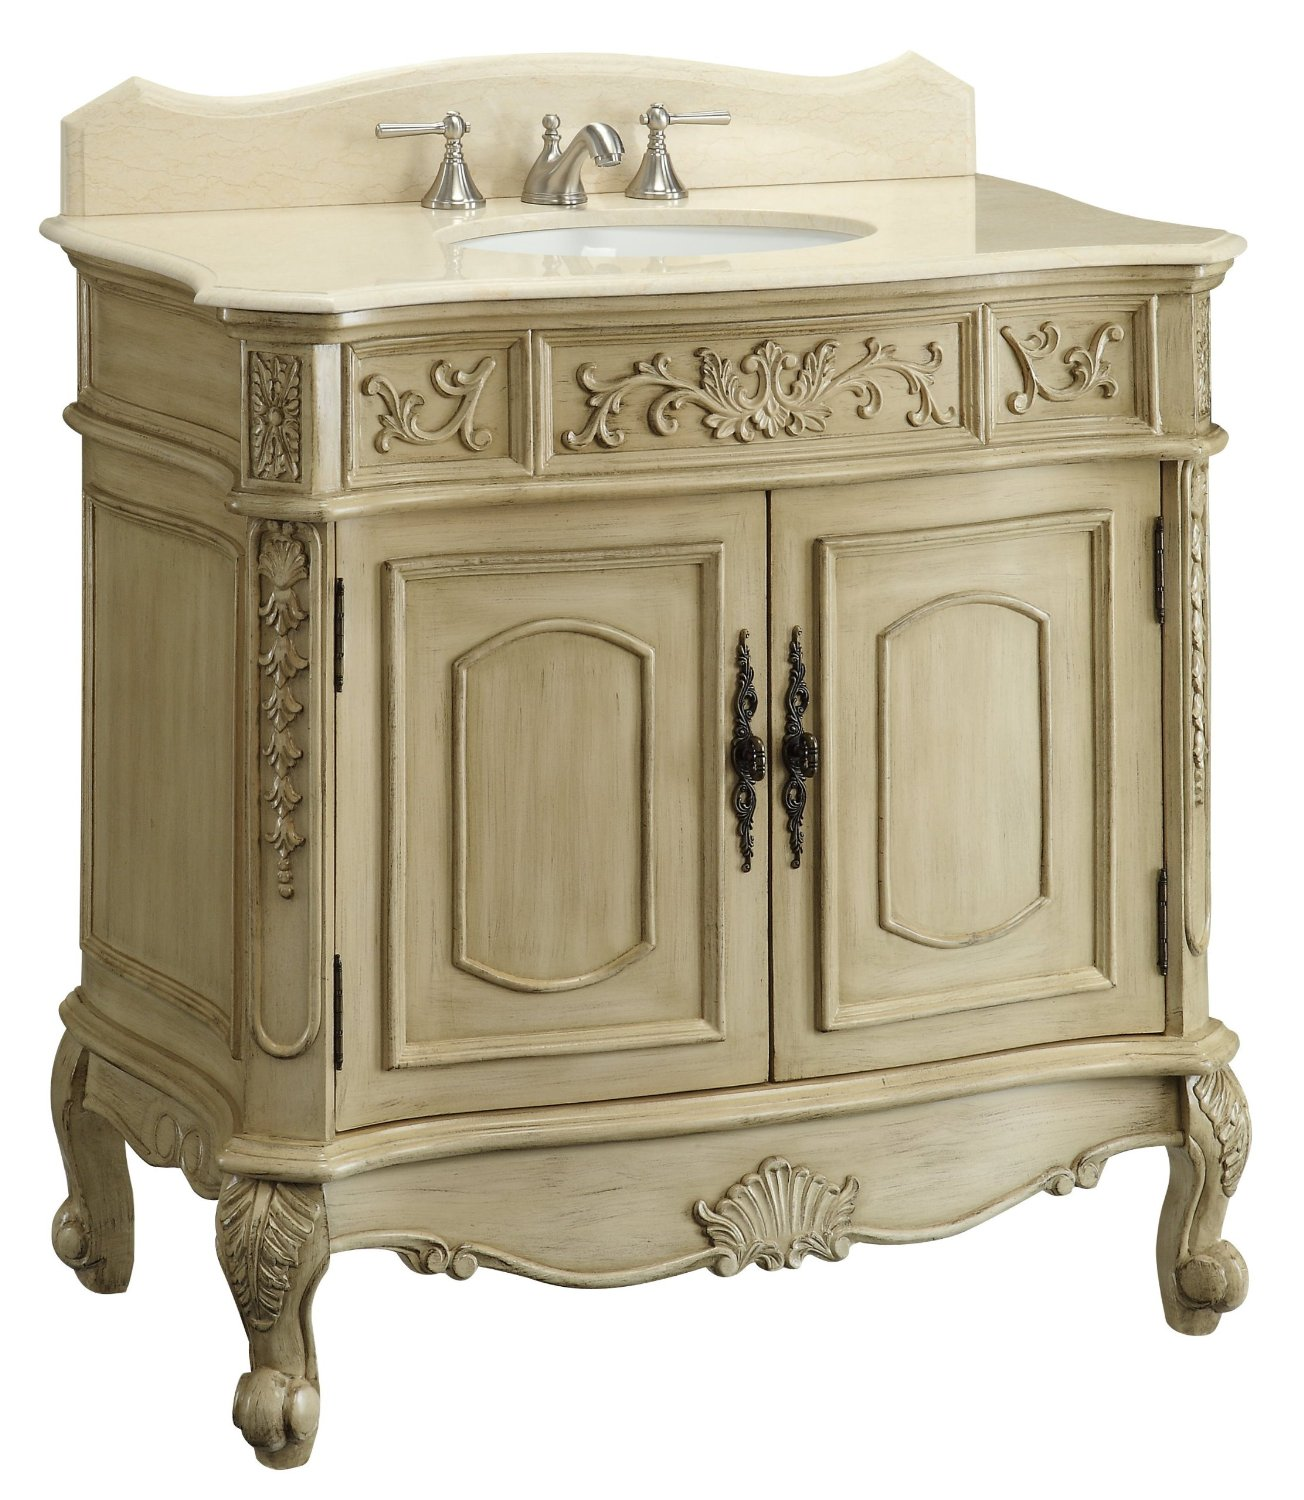 Adelina 37 inch Antique White Bathroom Vanity - Adelina 37 Inch Unique Antique Bathroom Vanity, White Marble